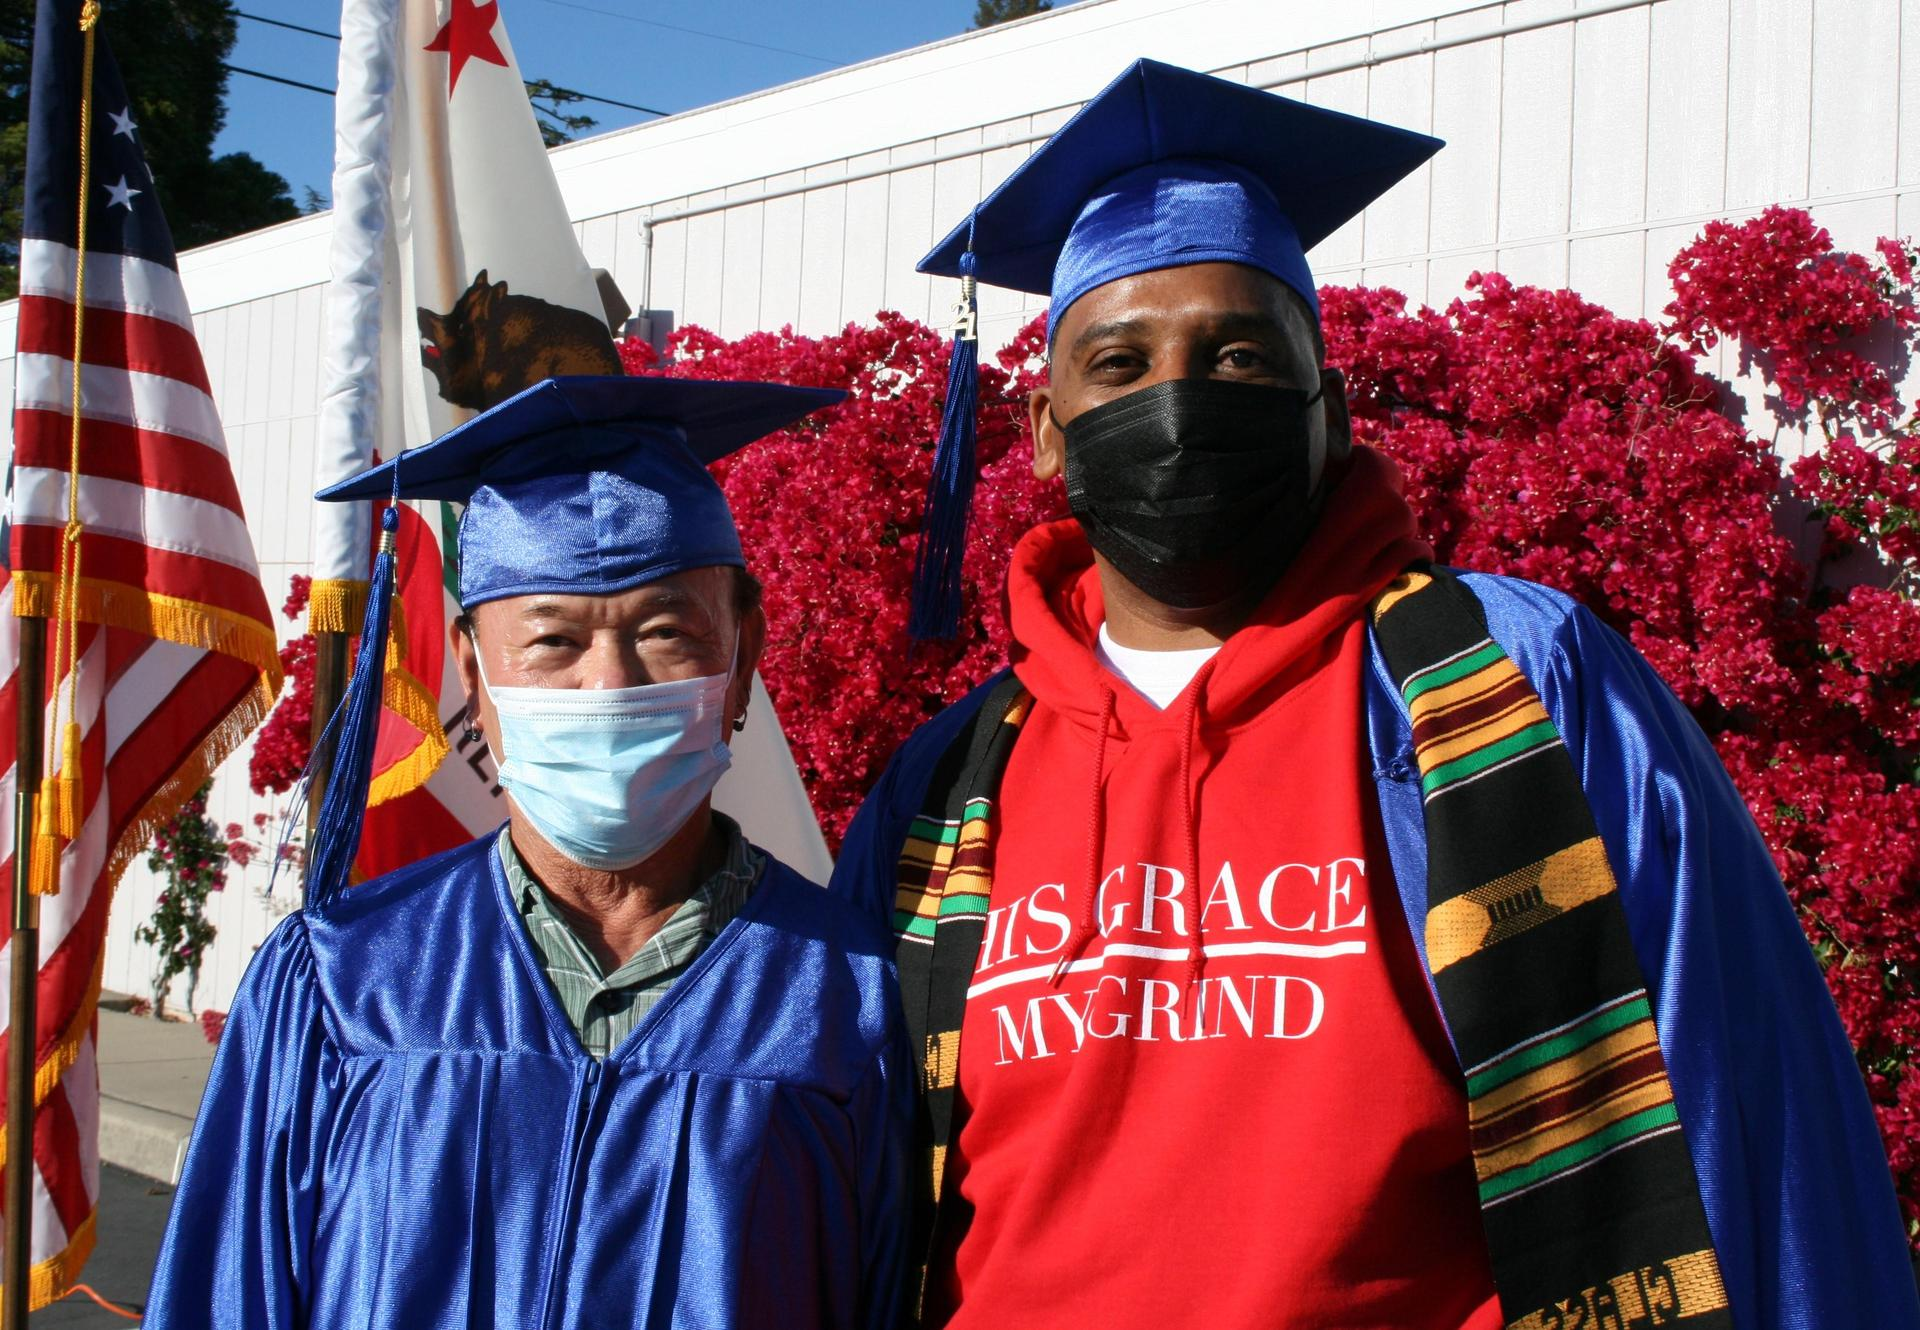 Two graduates from 2021 in cap and gown, smiling.